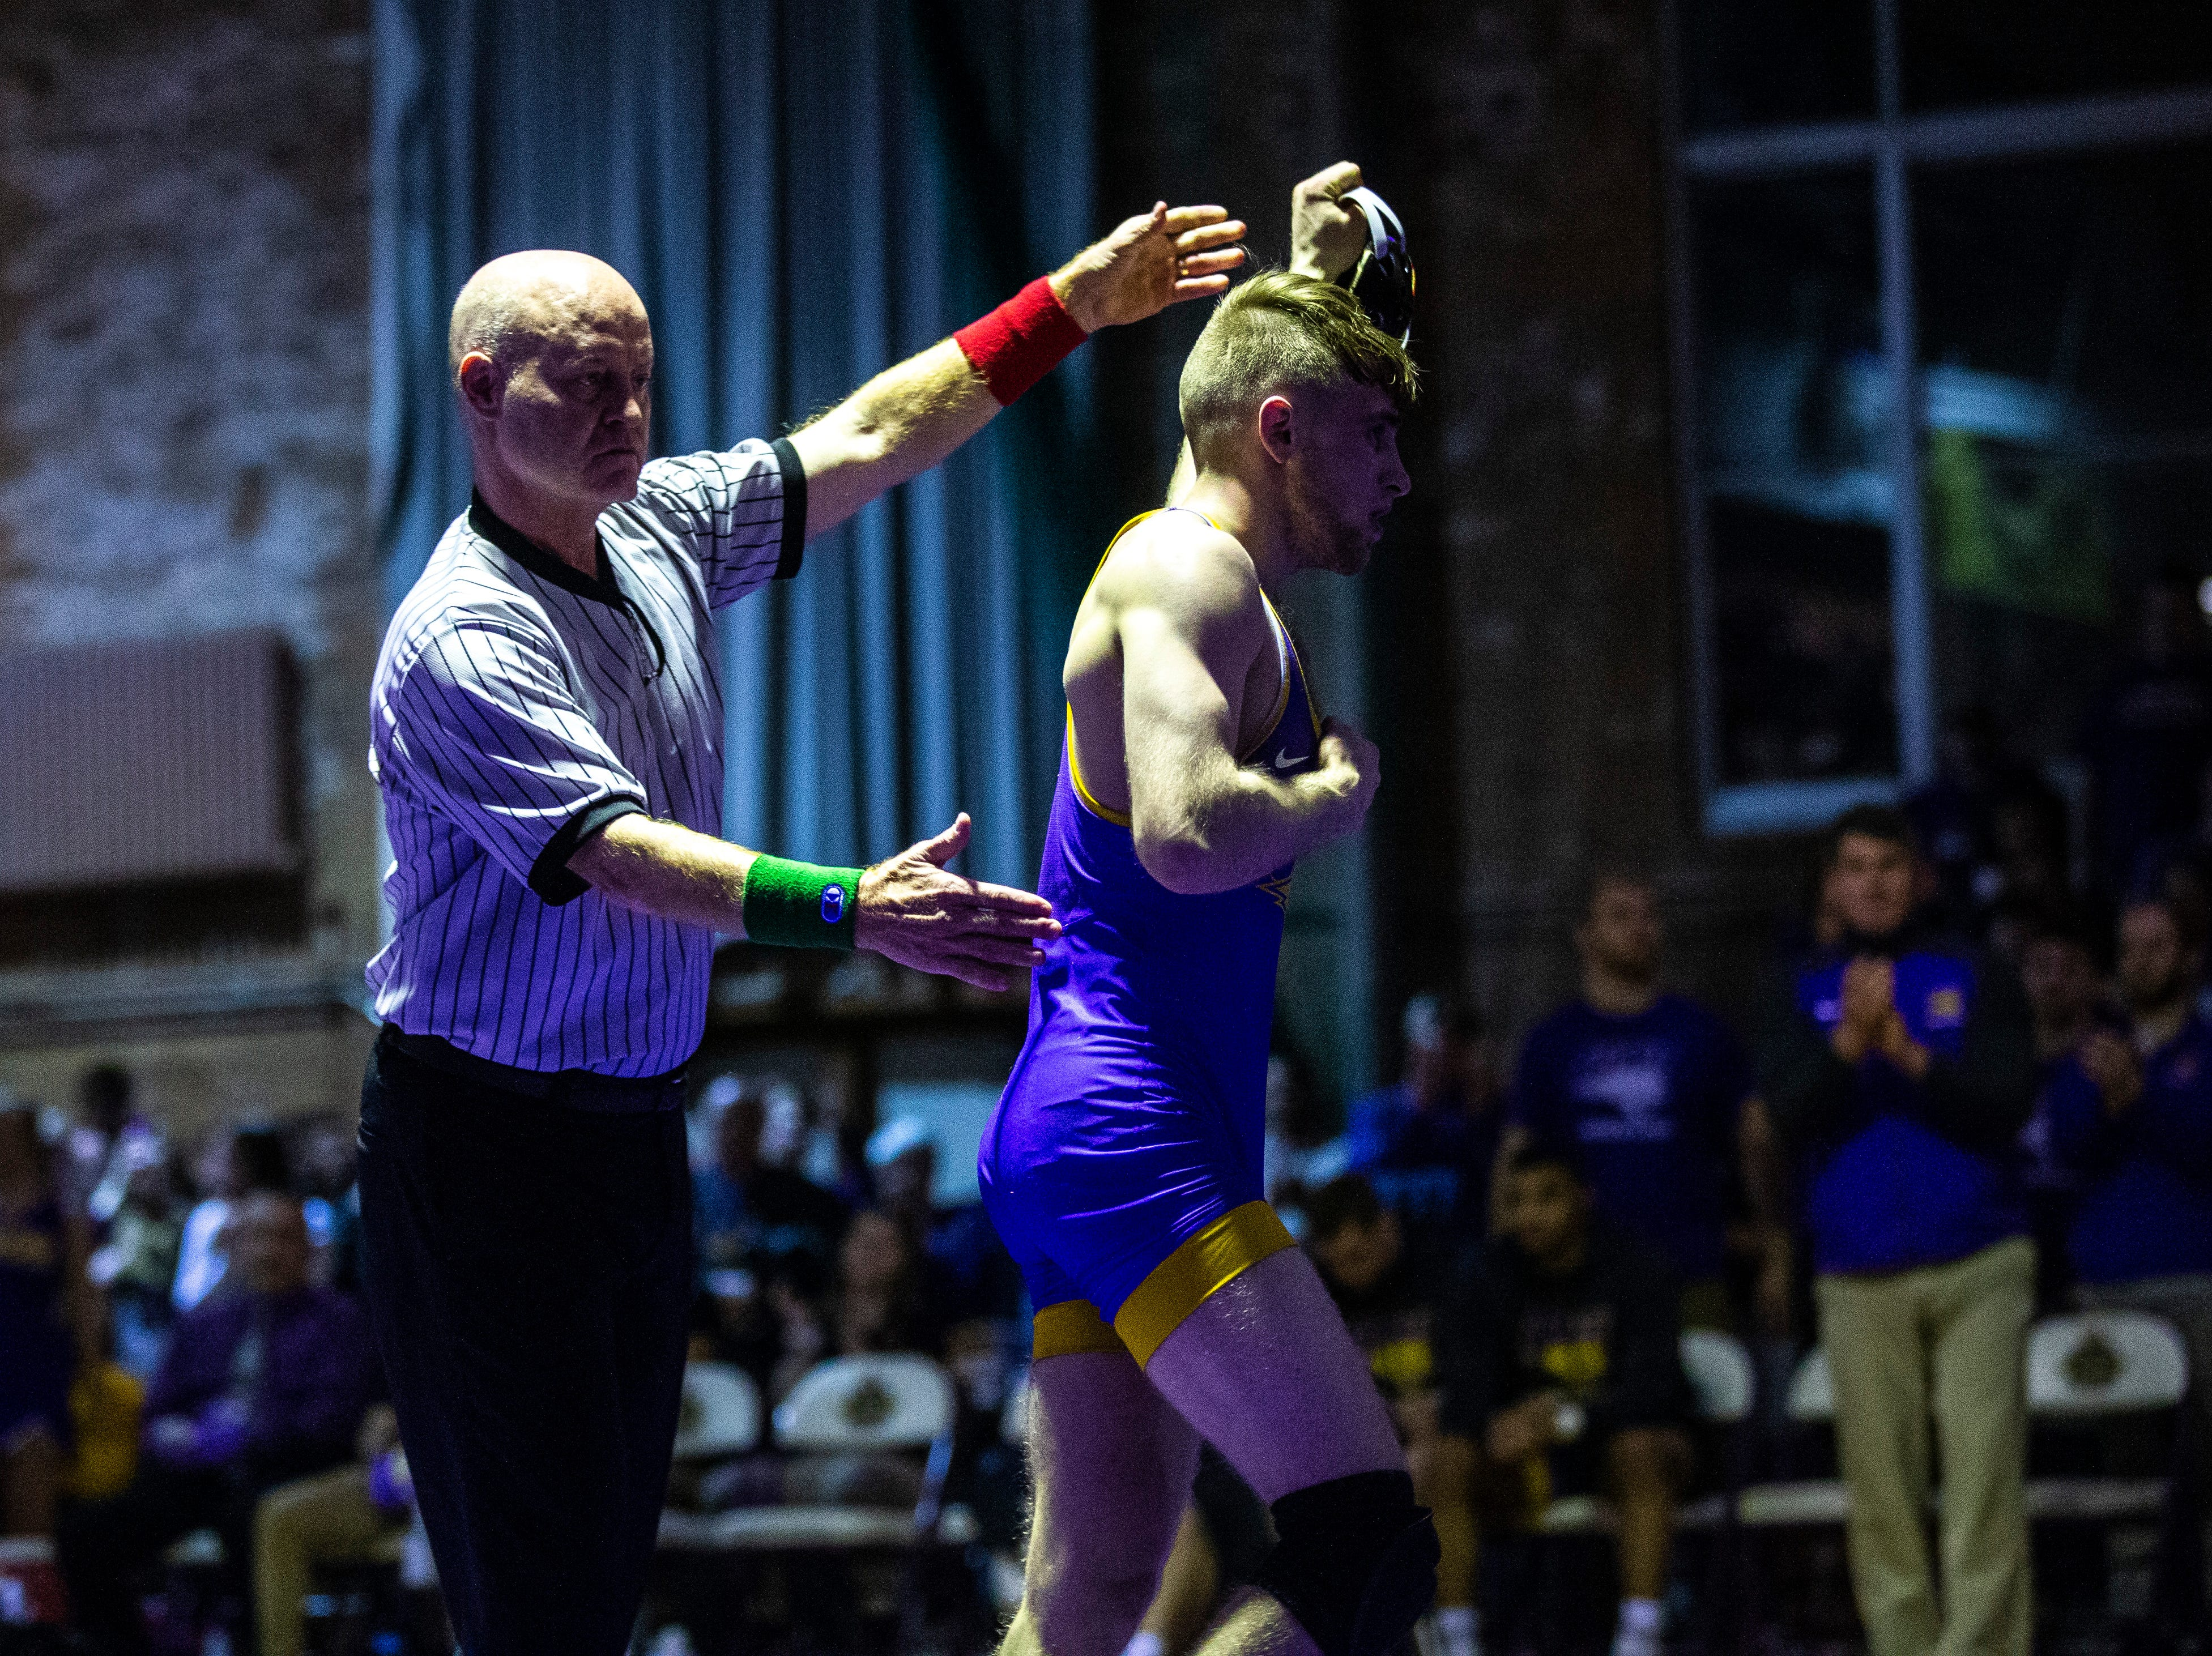 Northern Iowa's Jay Schwarm has his hand raised after wrestling Iowa State's Alex Mackall at 125 during a NCAA Big 12 wrestling dual on Thursday, Feb. 21, 2019 at the West Gymnasium in Cedar Falls, Iowa.